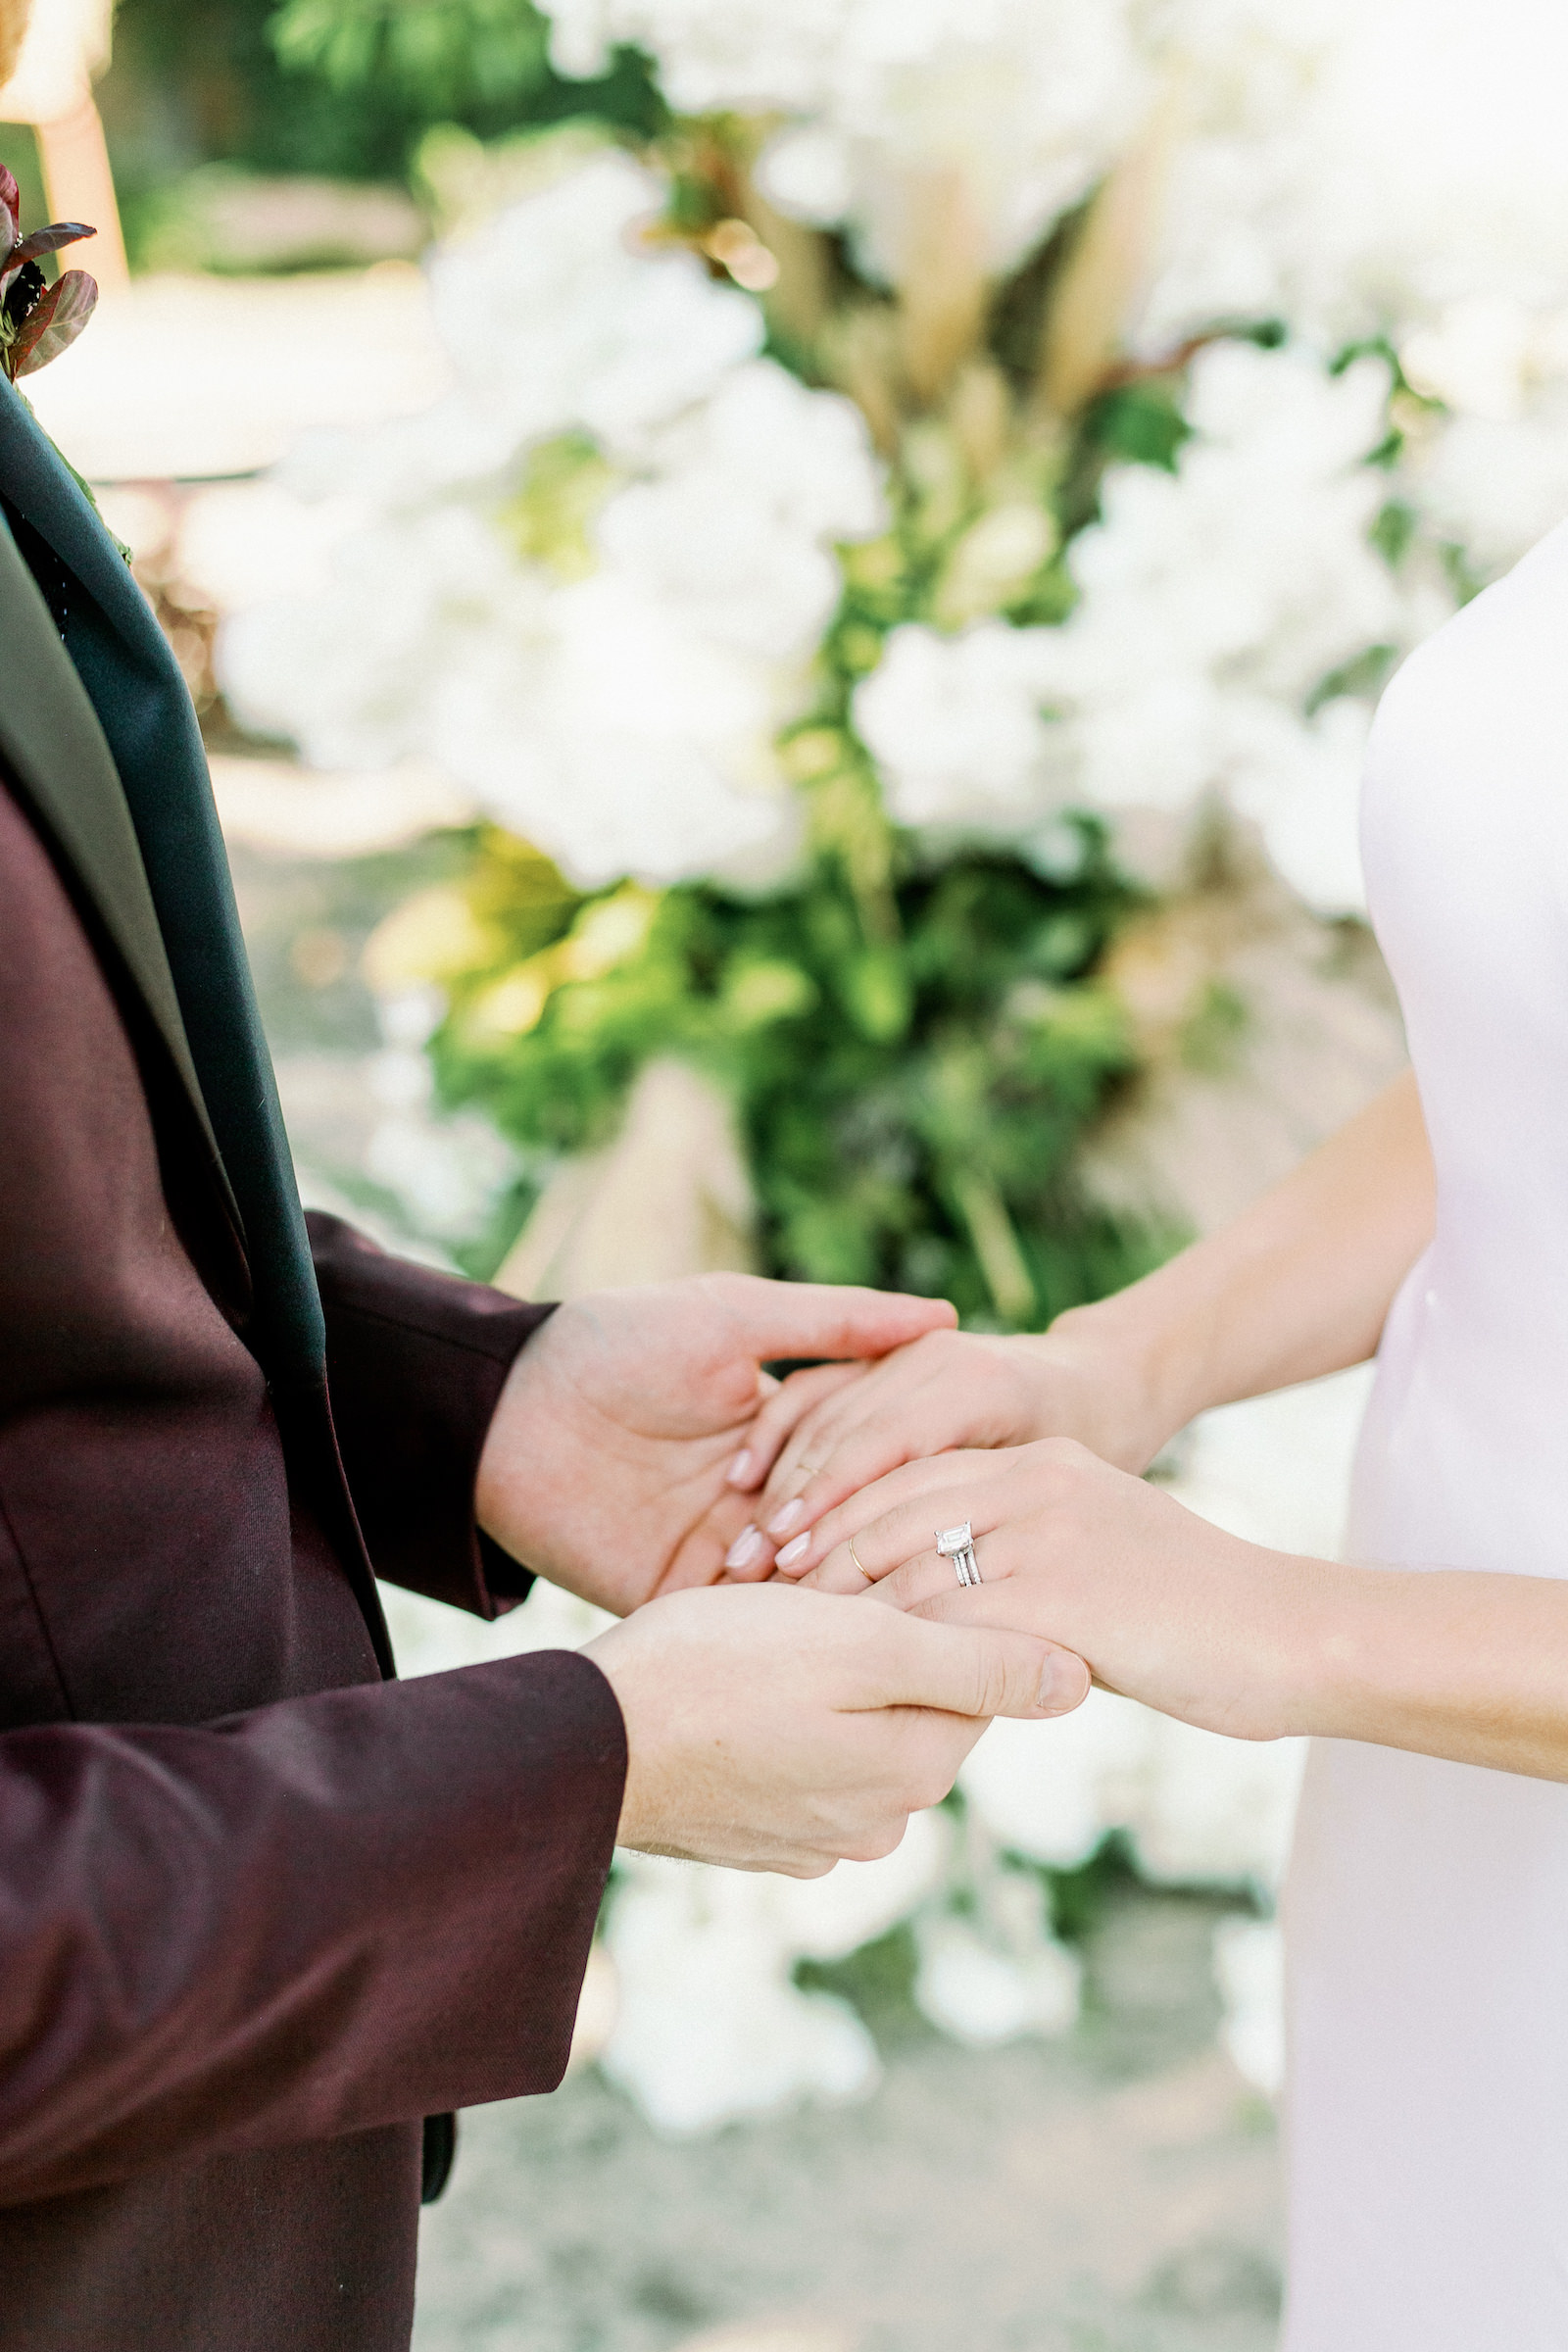 Bride and Groom Outdoor Atrium Intimate COVID Elopement Micro Wedding Ceremony Vows Rings Exchange